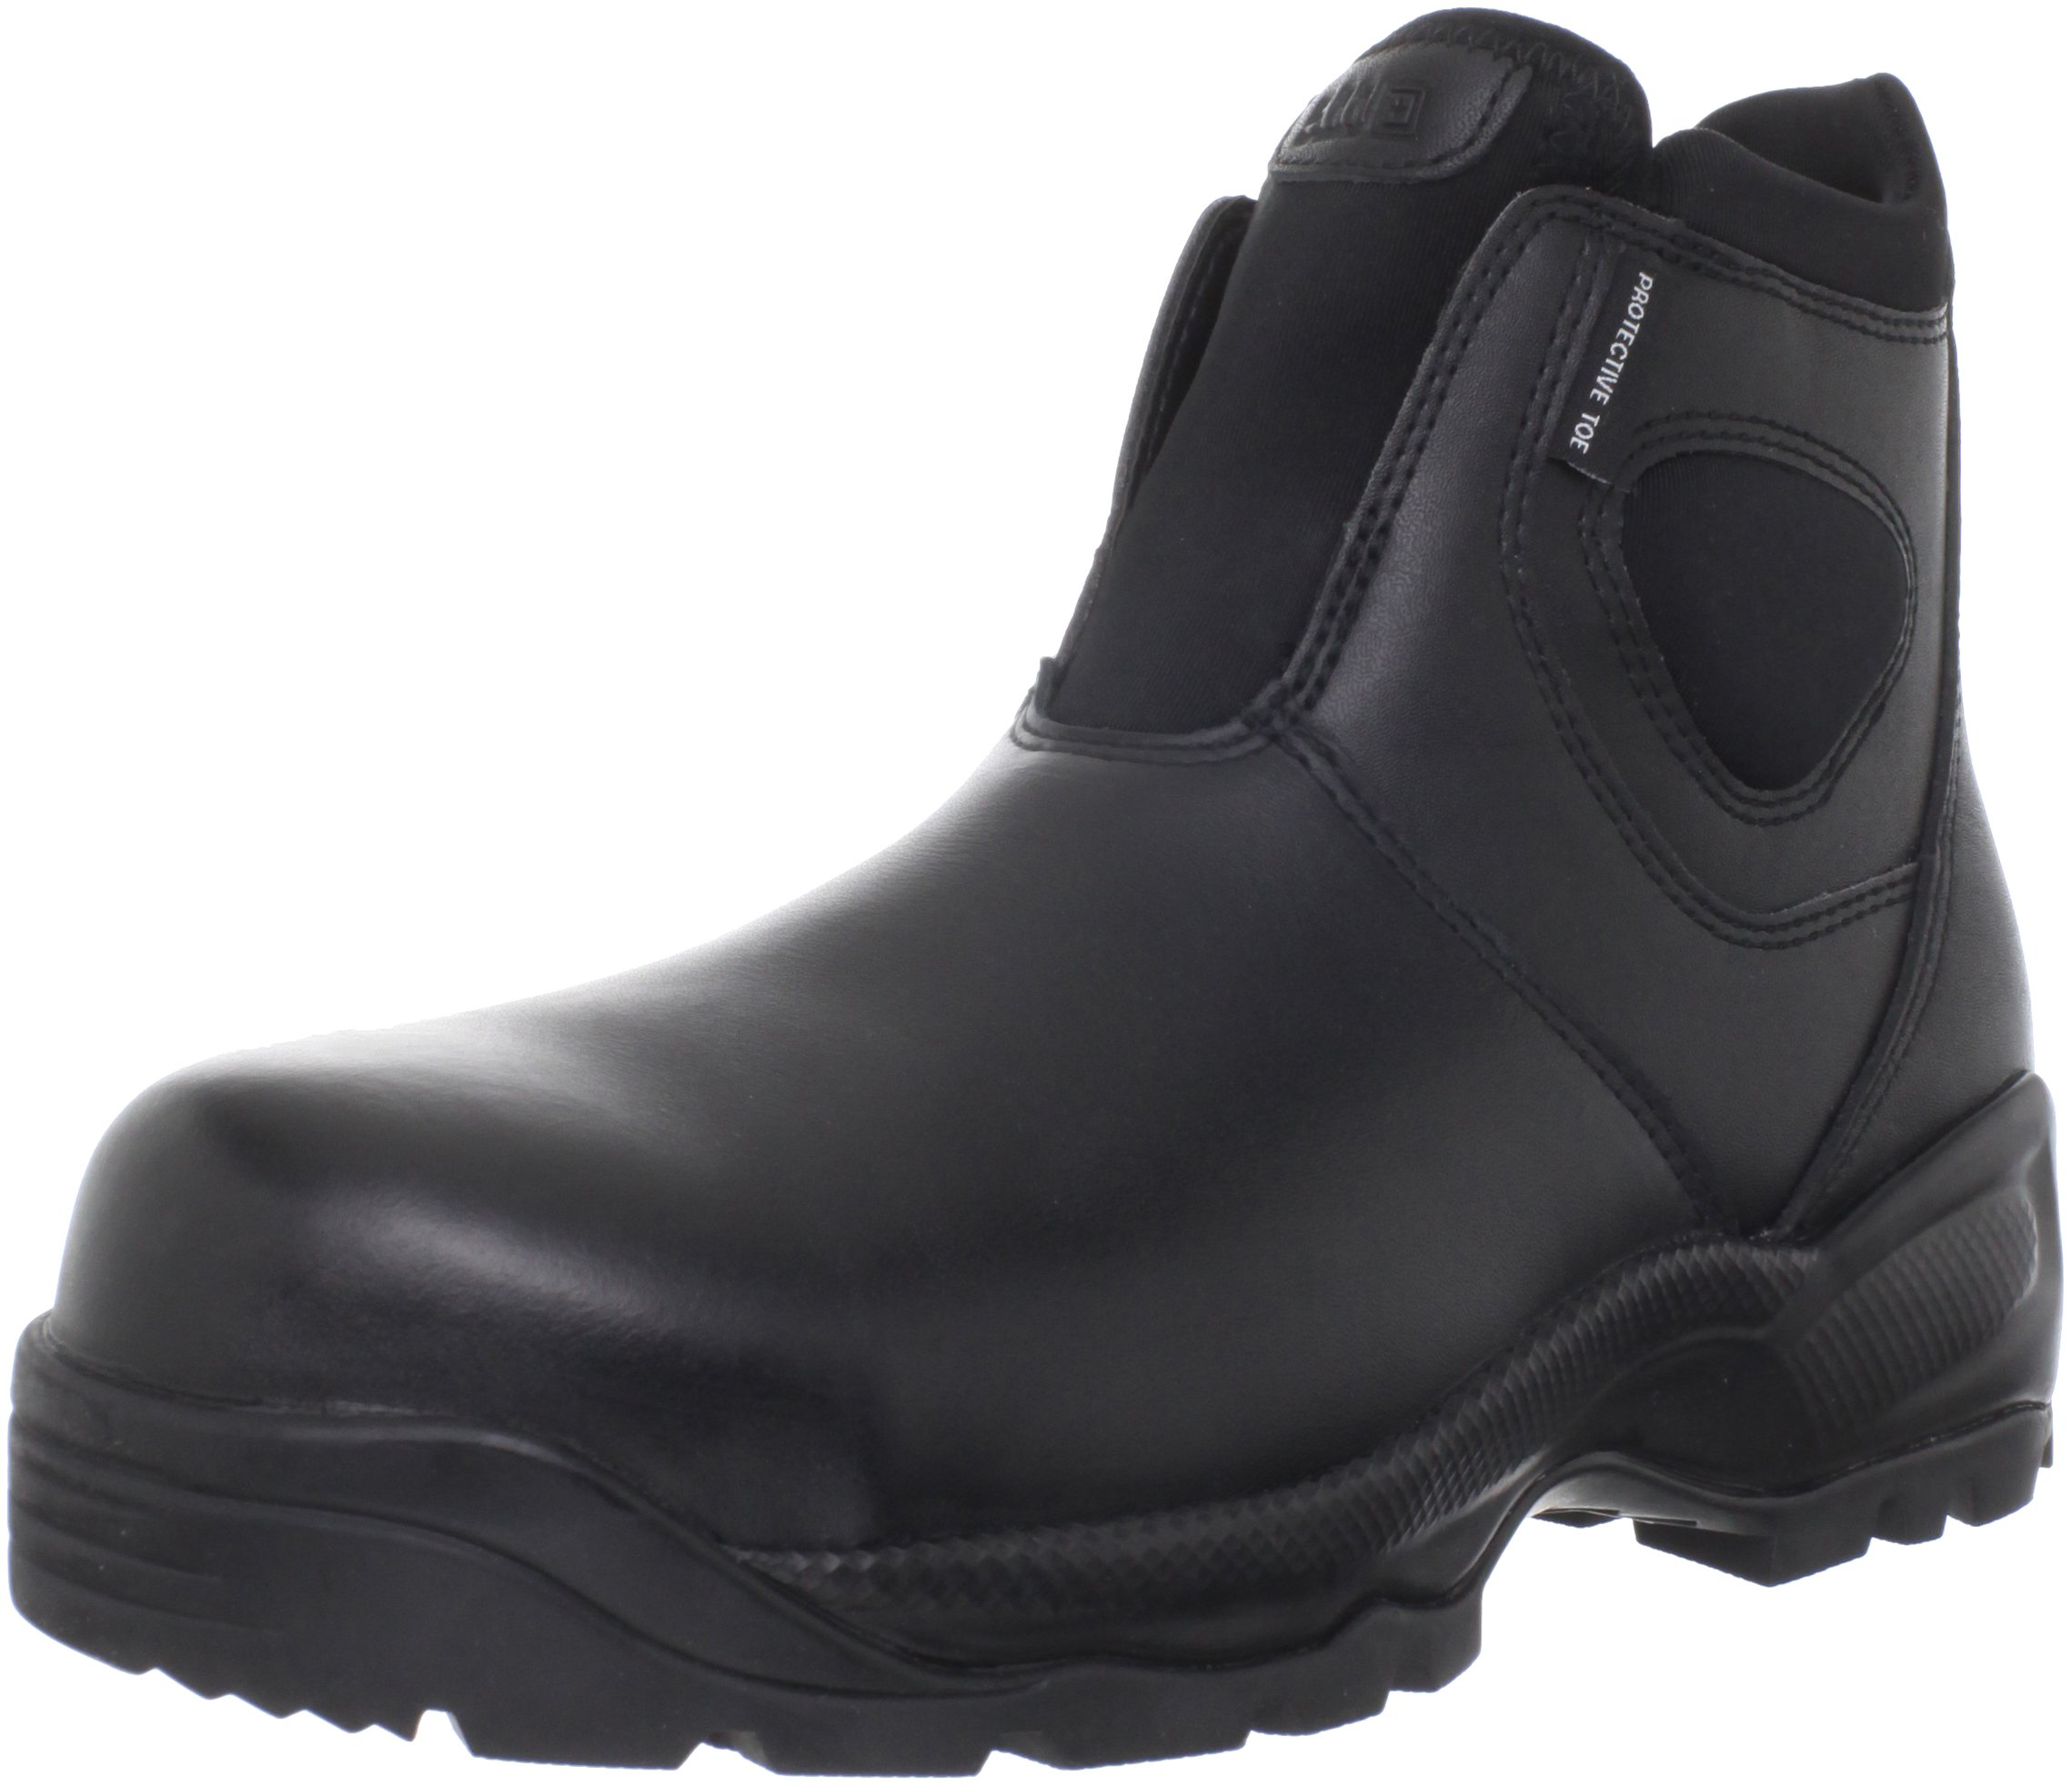 24097 - Company Cst Boot 2.0 Blk 11W